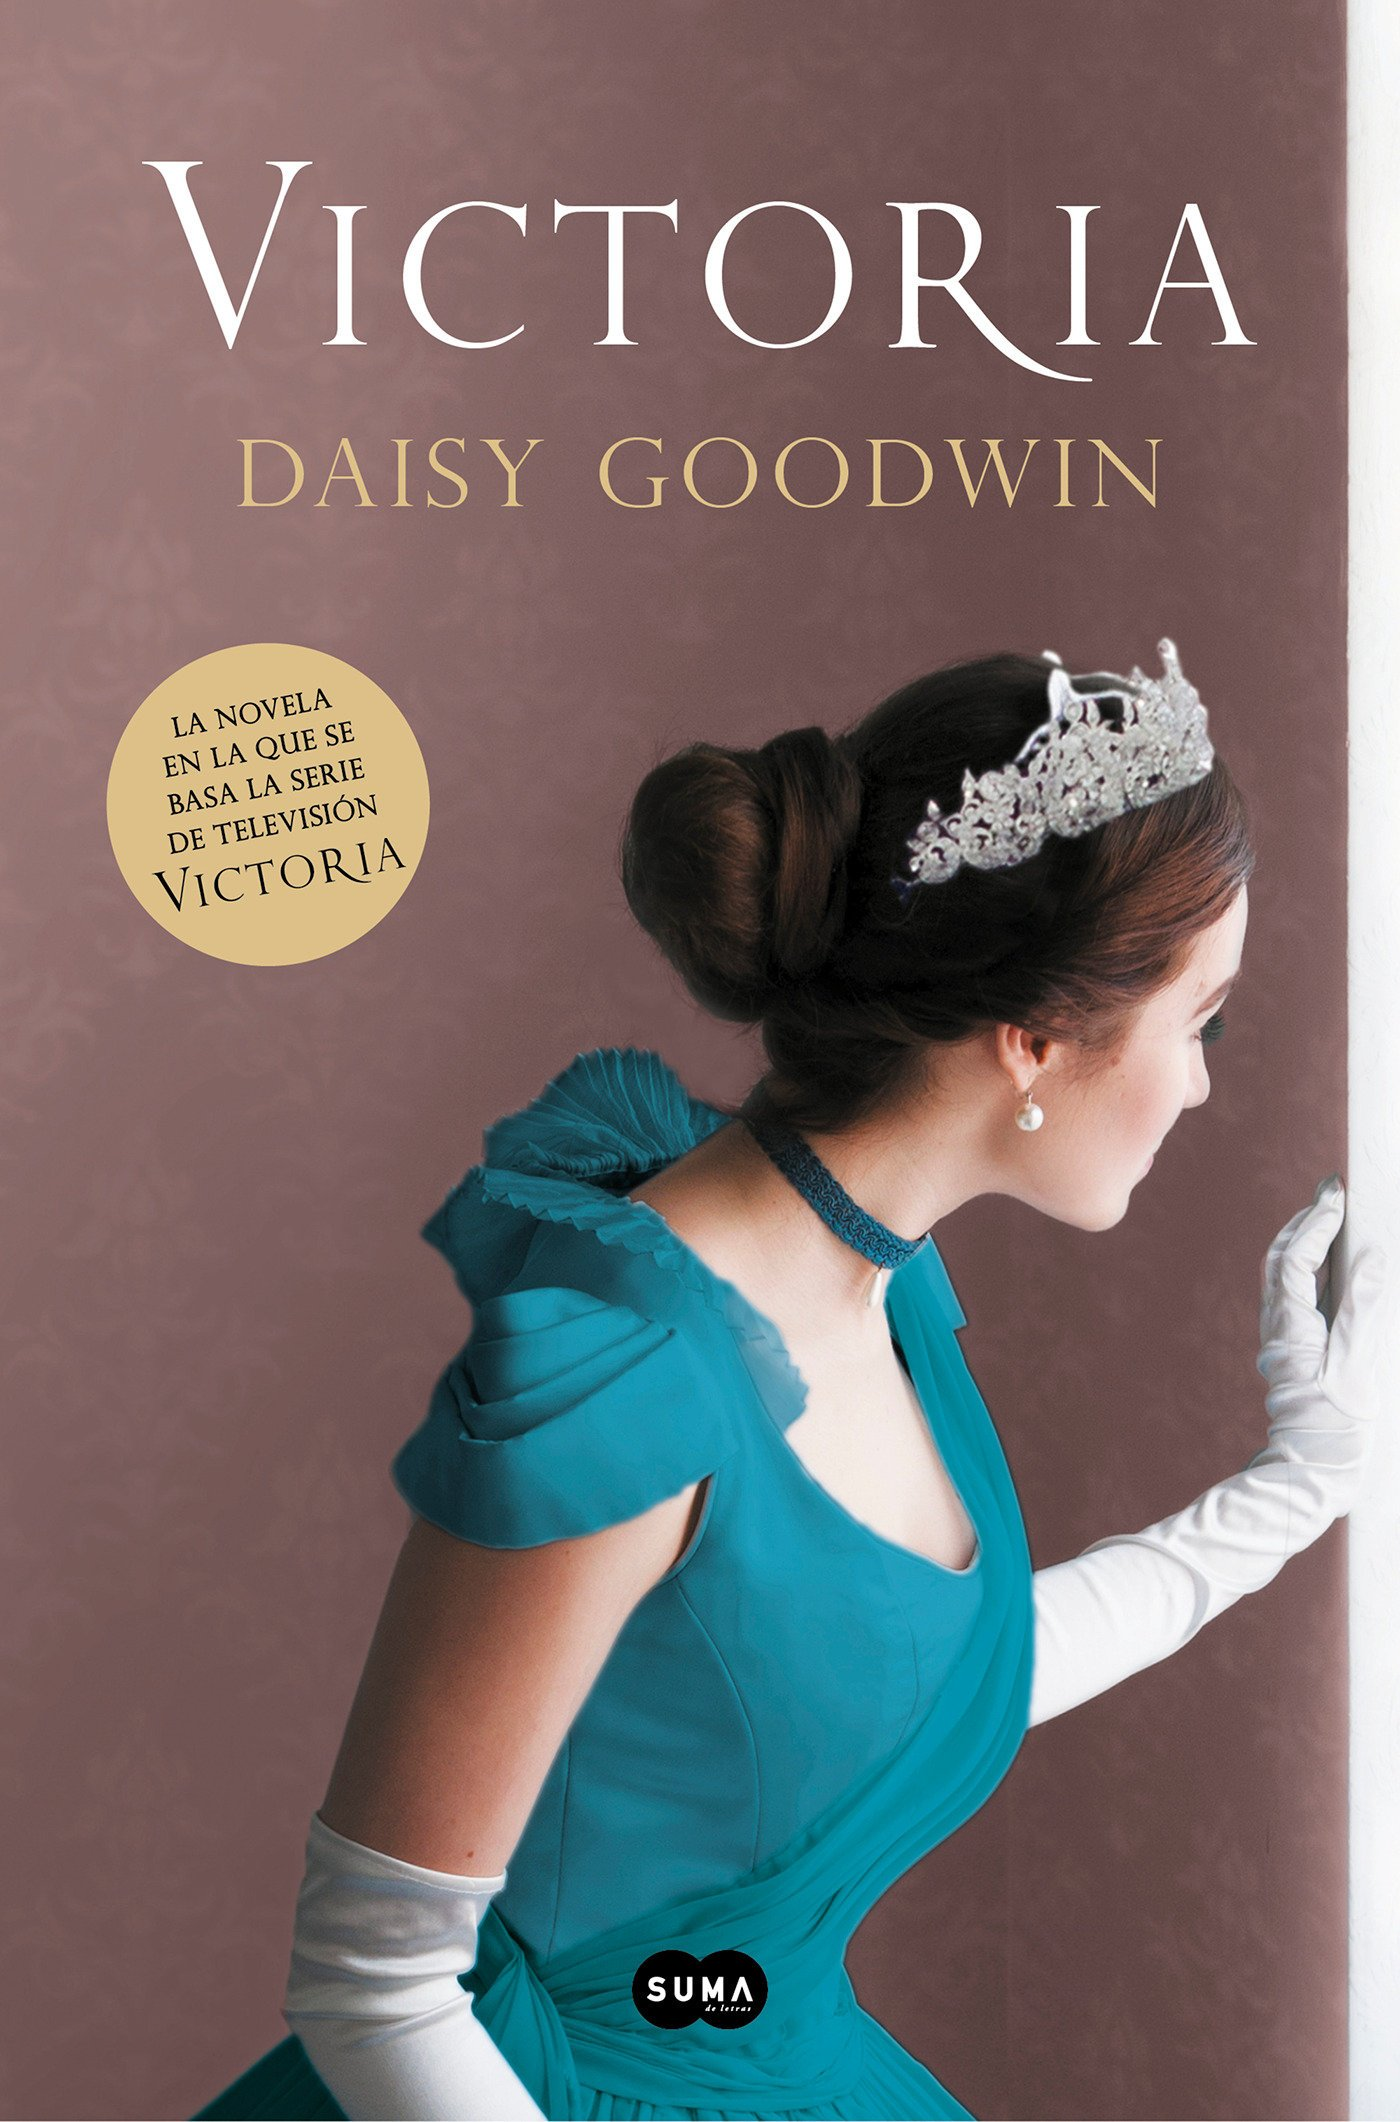 Victoria (FUERA DE COLECCION SUMA.) Tapa dura – 16 nov 2017 Daisy Goodwin 8491292098 Albert Biographical fiction